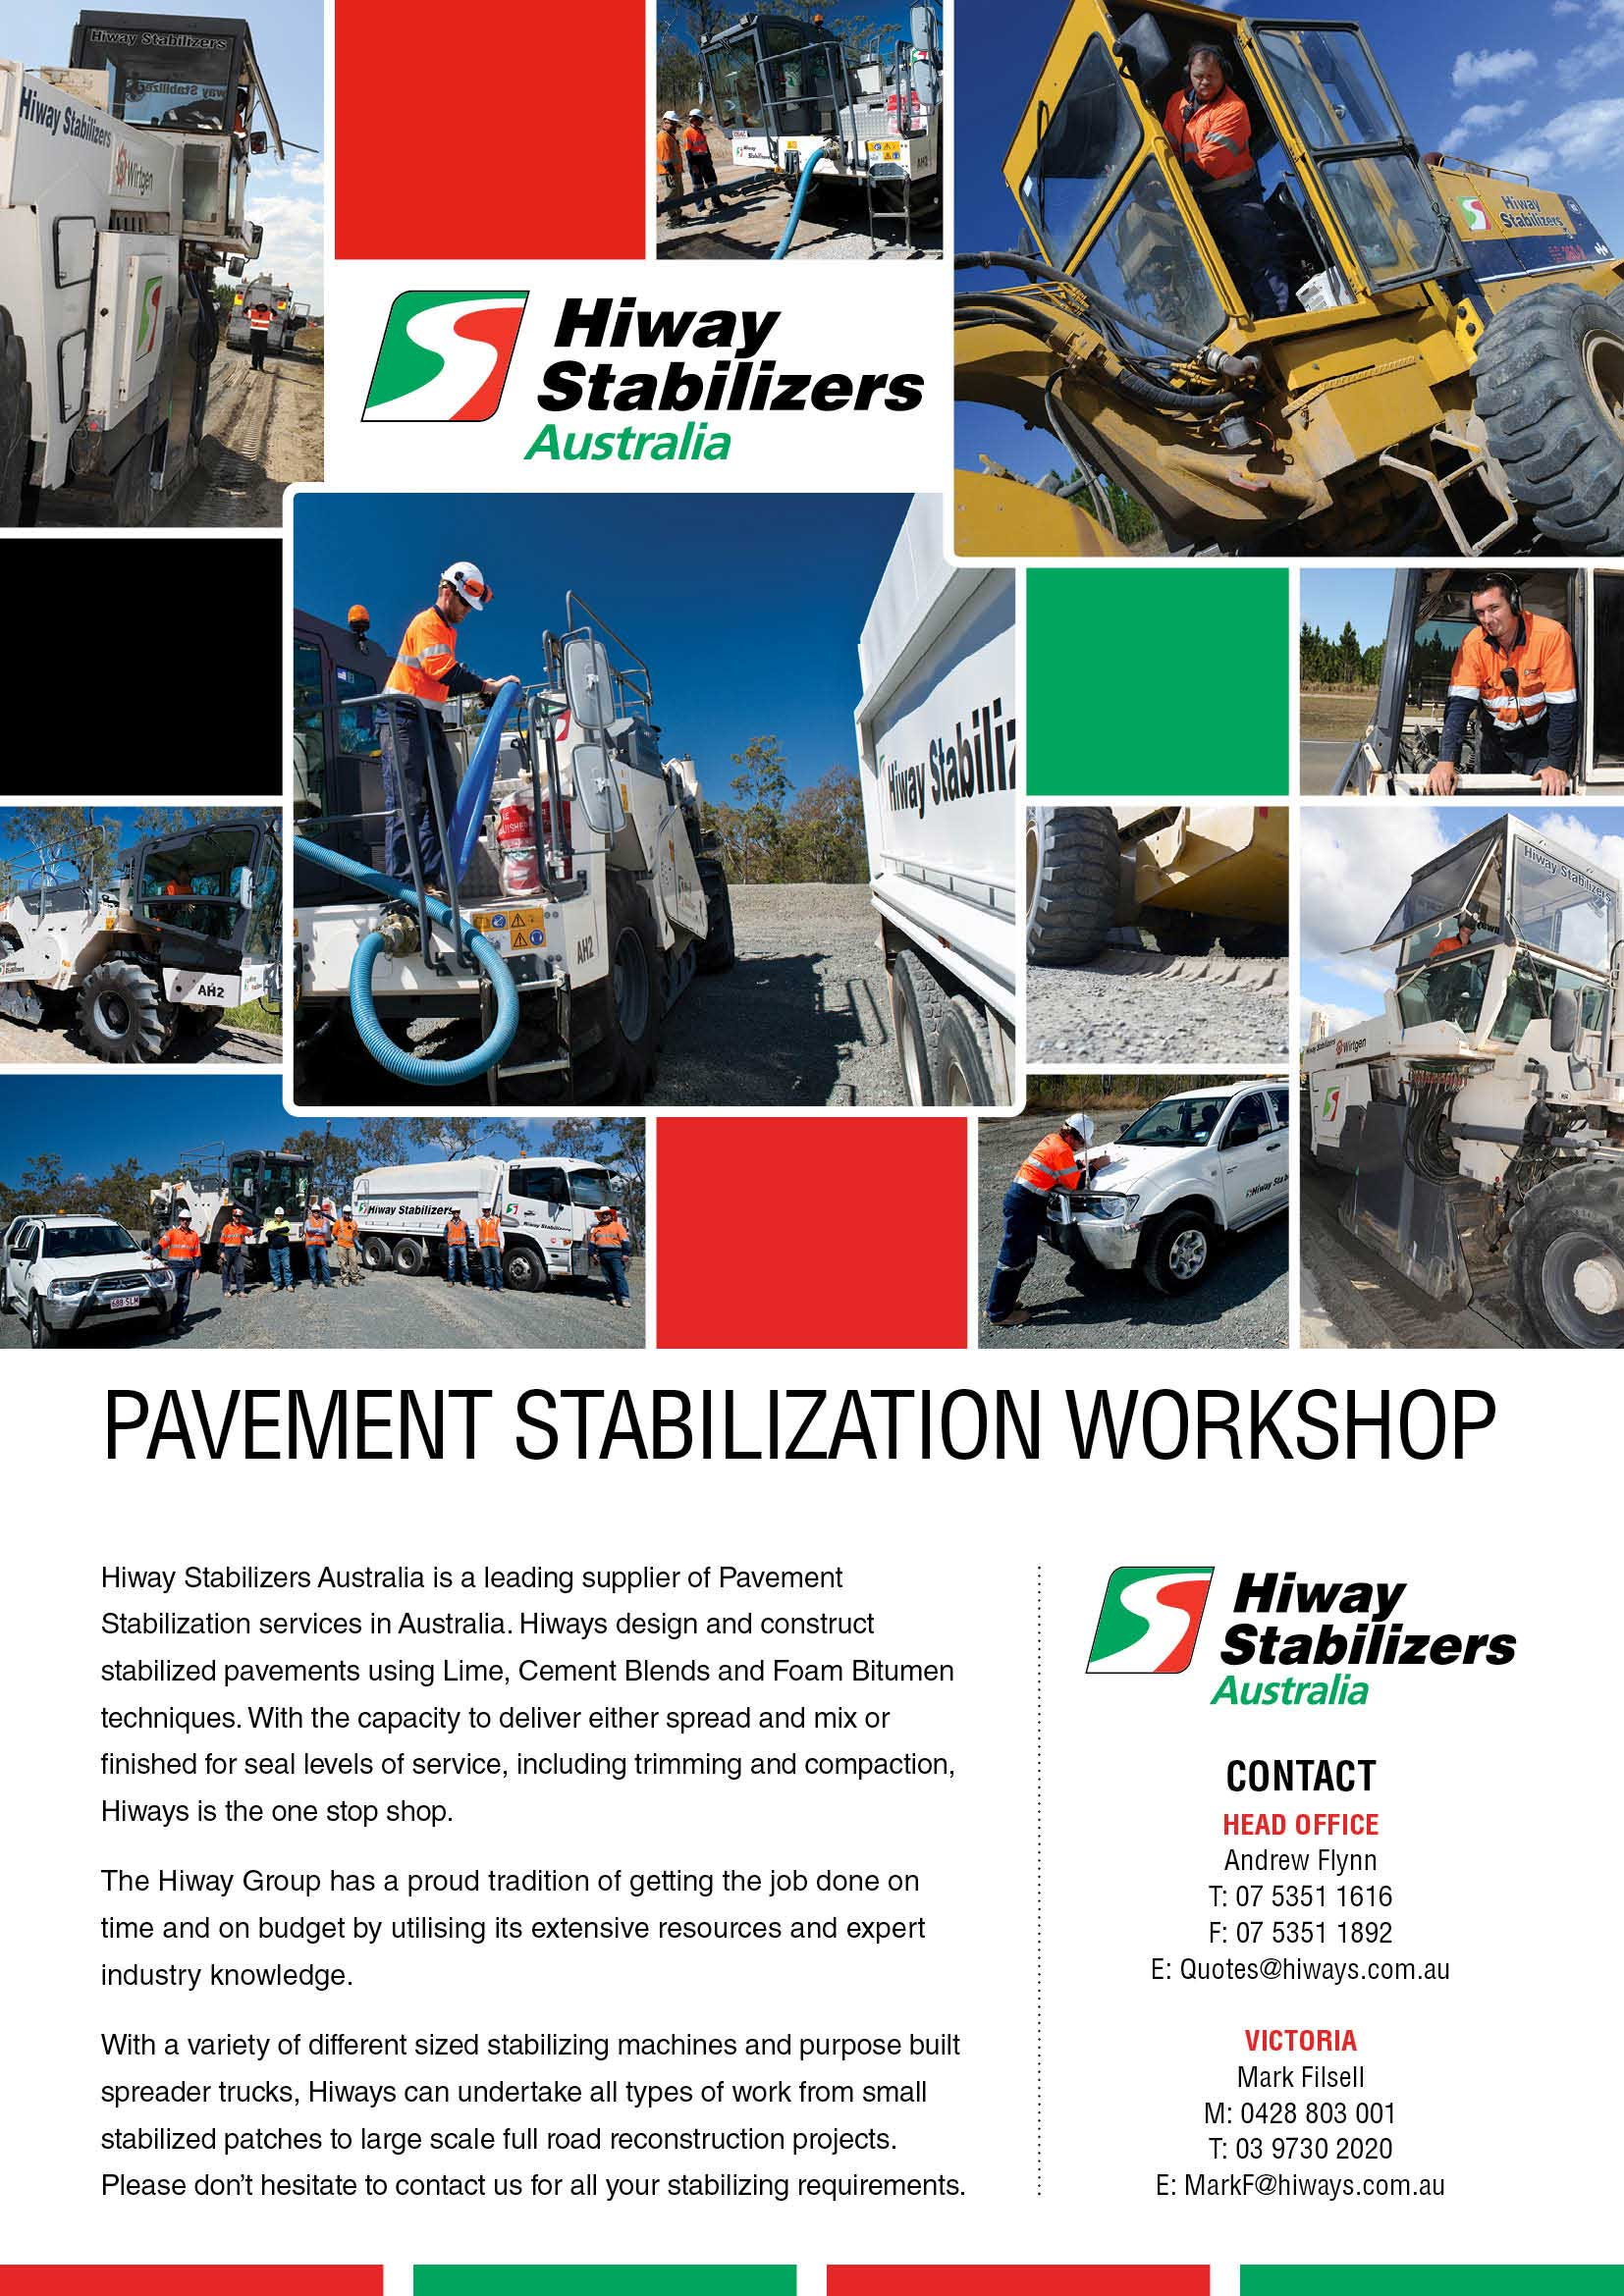 Hiway Stabilizers